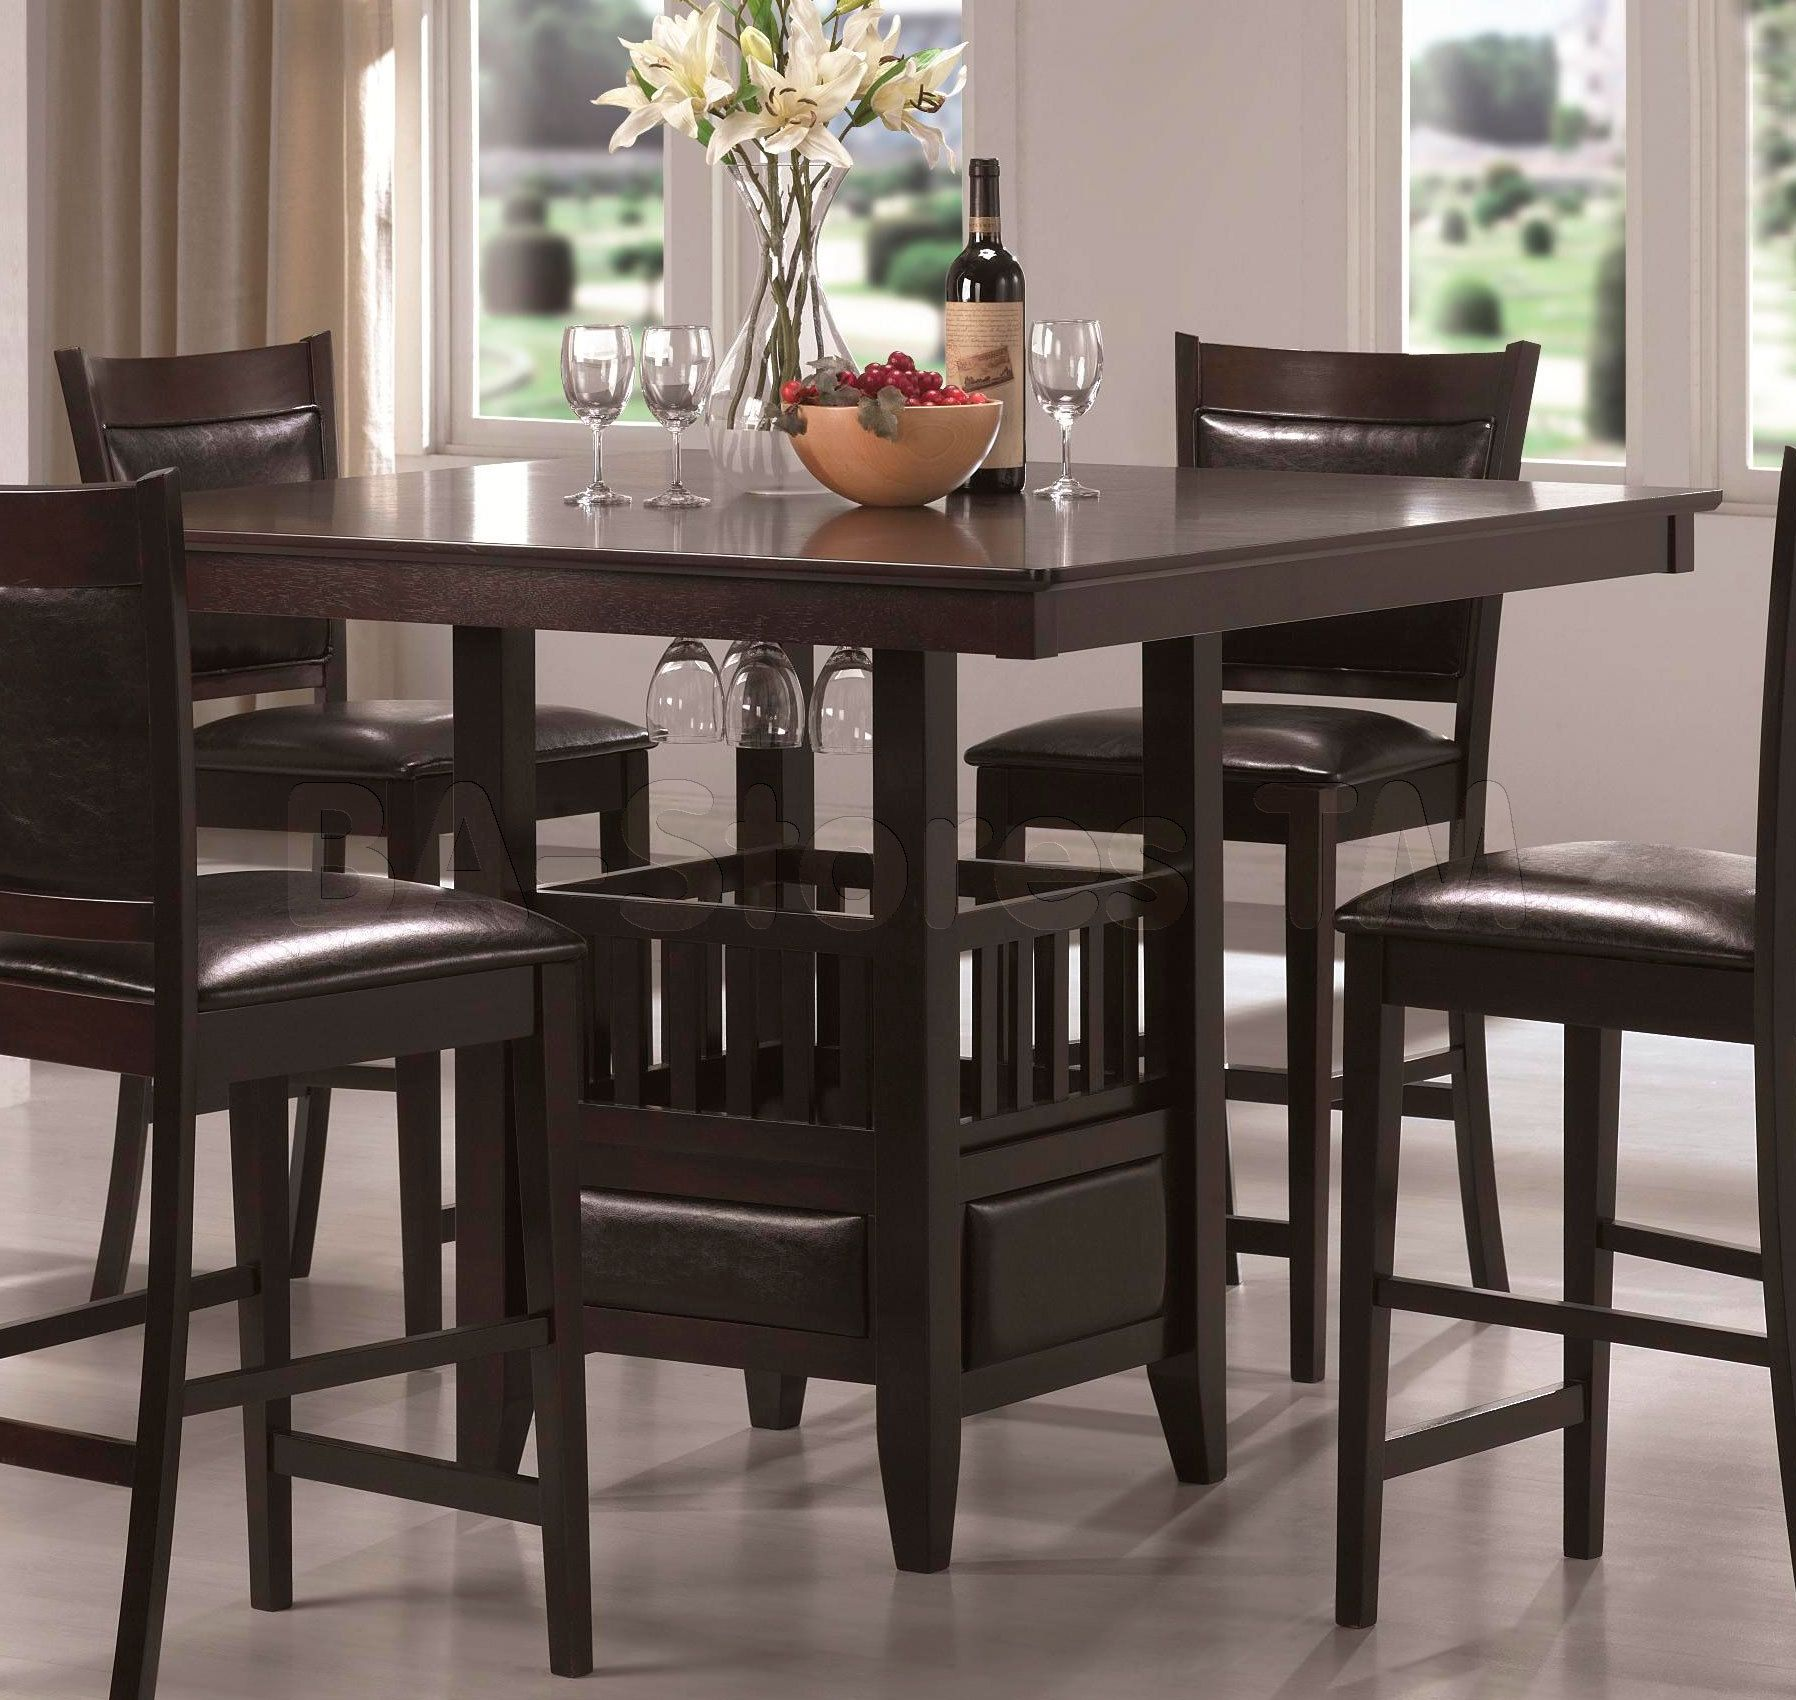 Kitchen Set Table And Chairs 17 Best Images About Dining Island On Pinterest Marble Top